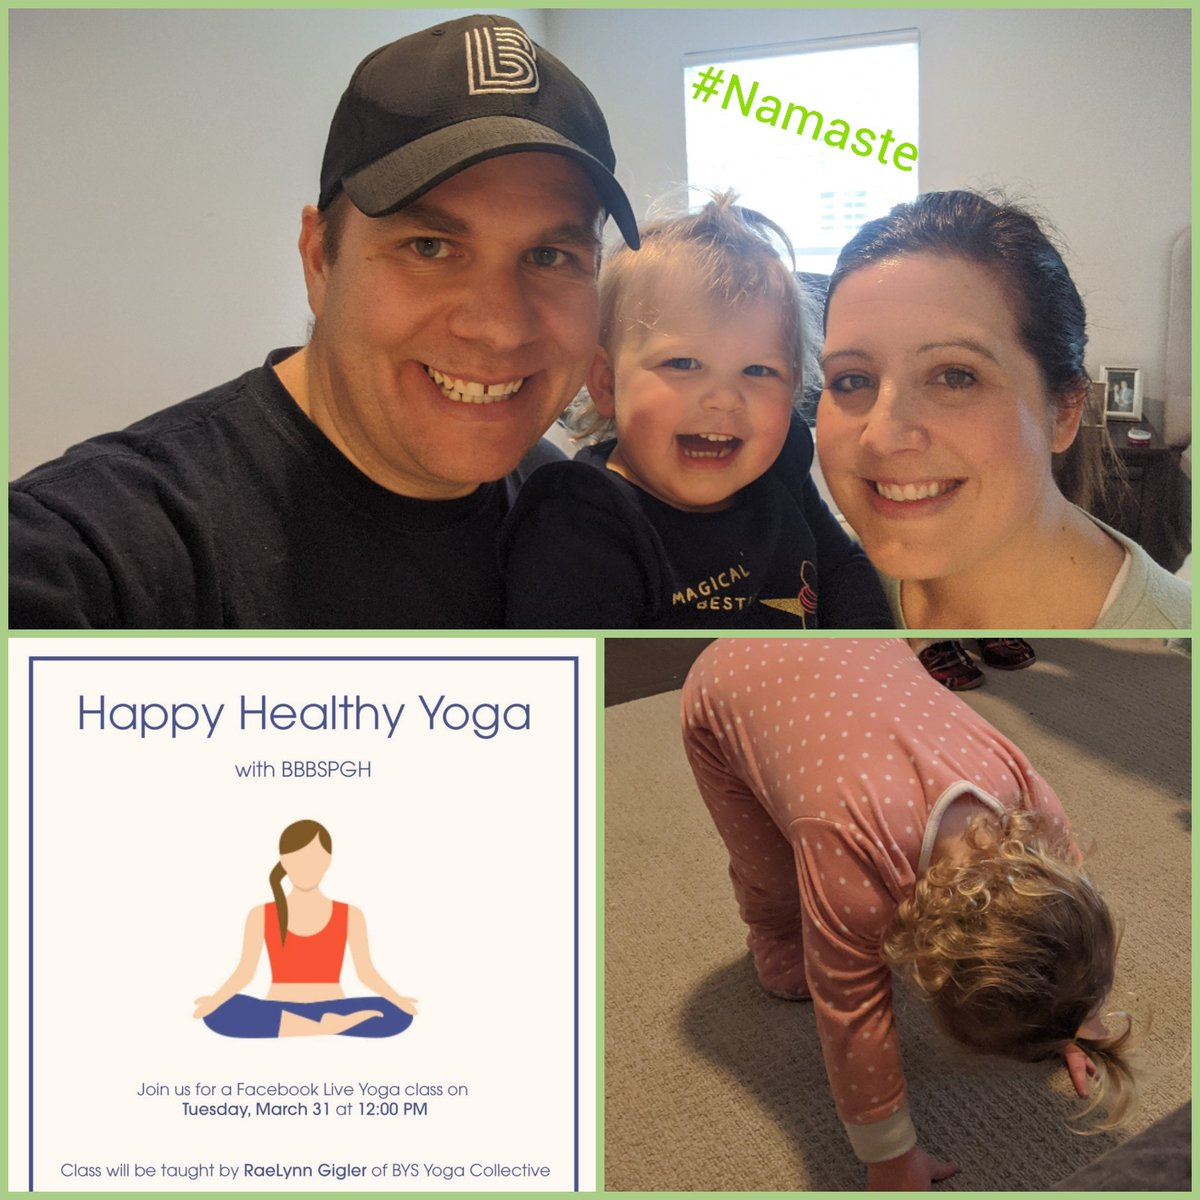 It's Namaste time, BBBS! Come get your Happy Healthy Yoga on with awesome instructor RaeLynn Harshman Gigler at Noon on BBBS Facebook Live! @gigs412  #BeABig pic.twitter.com/VIP6KjMXIR